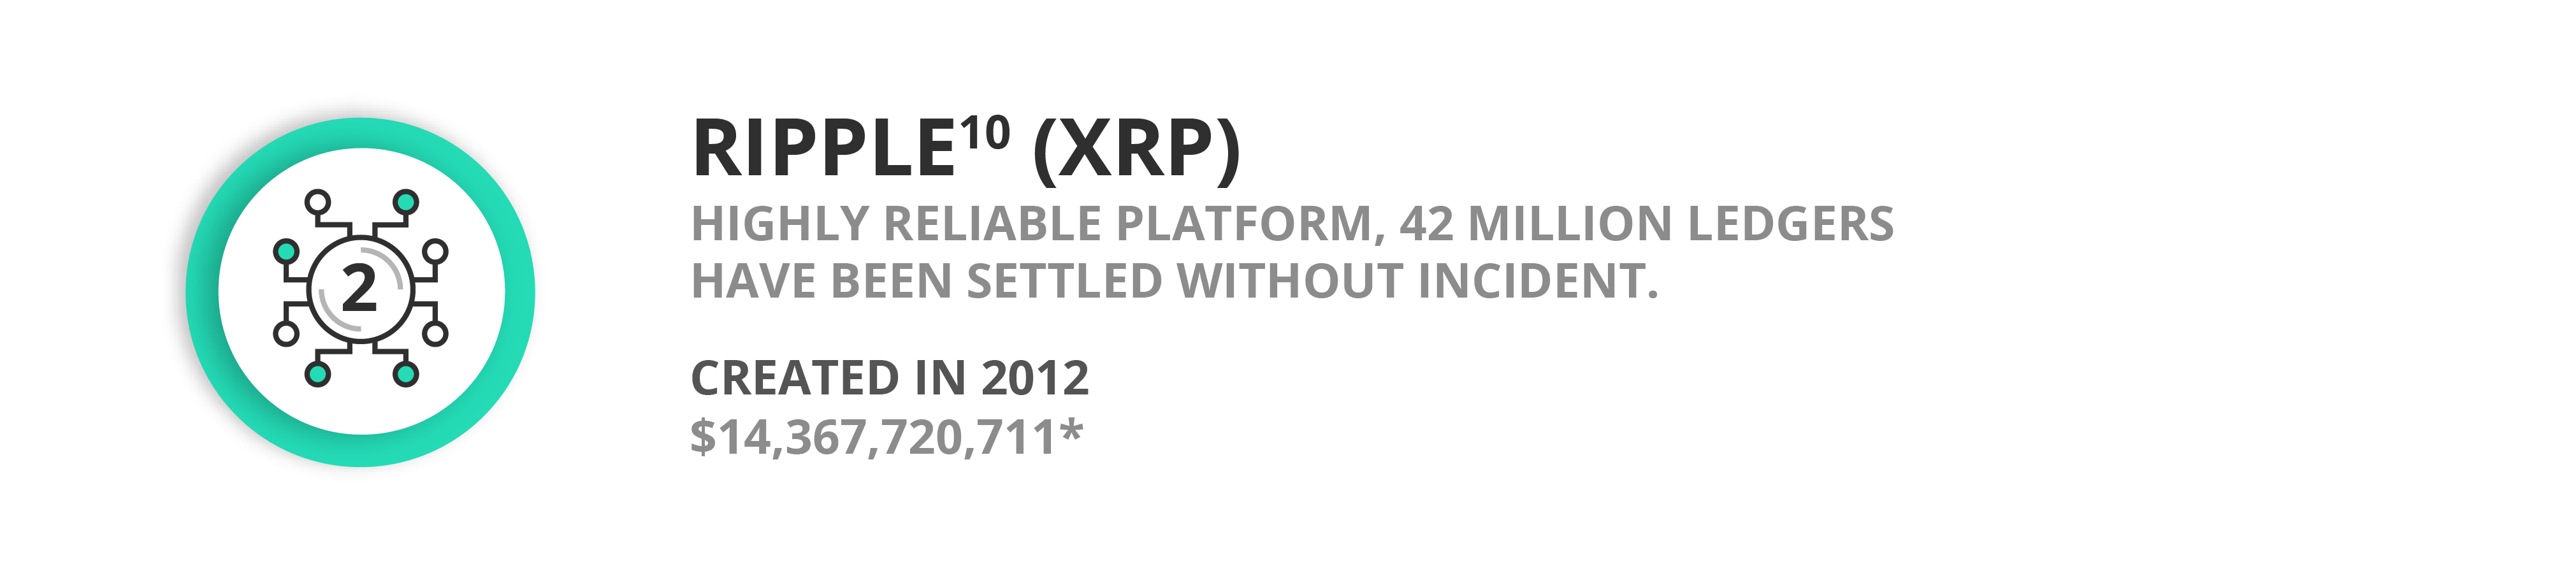 Ripple (XRP) cryptocurrency. Highly reliable platform, 42 million ledgers have been settled without incident